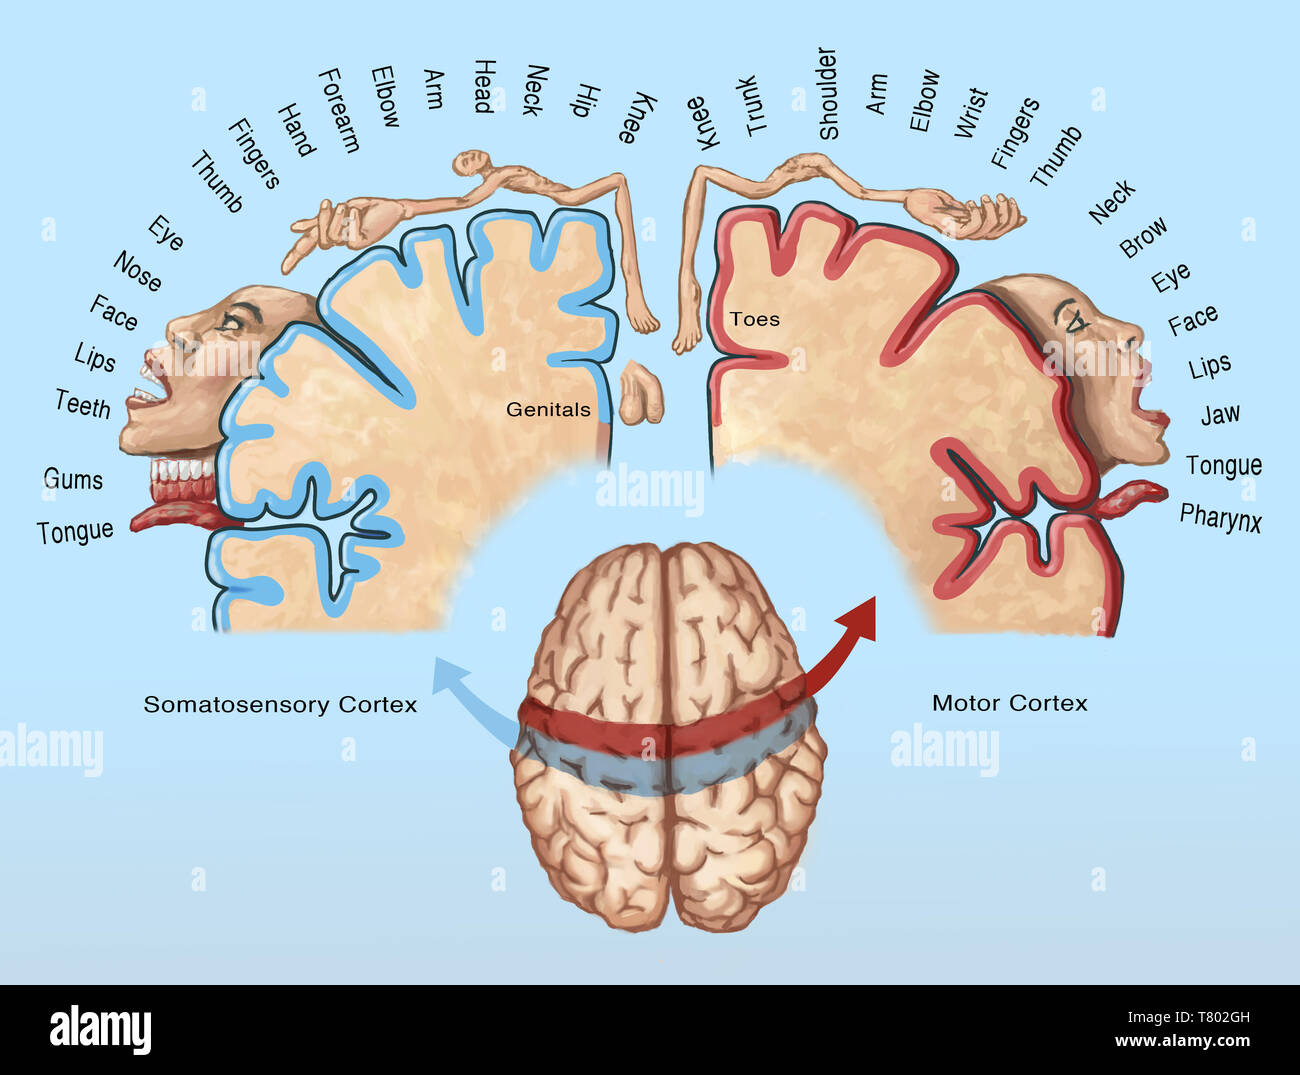 Cortical Homunculus Illustration - Stock Image